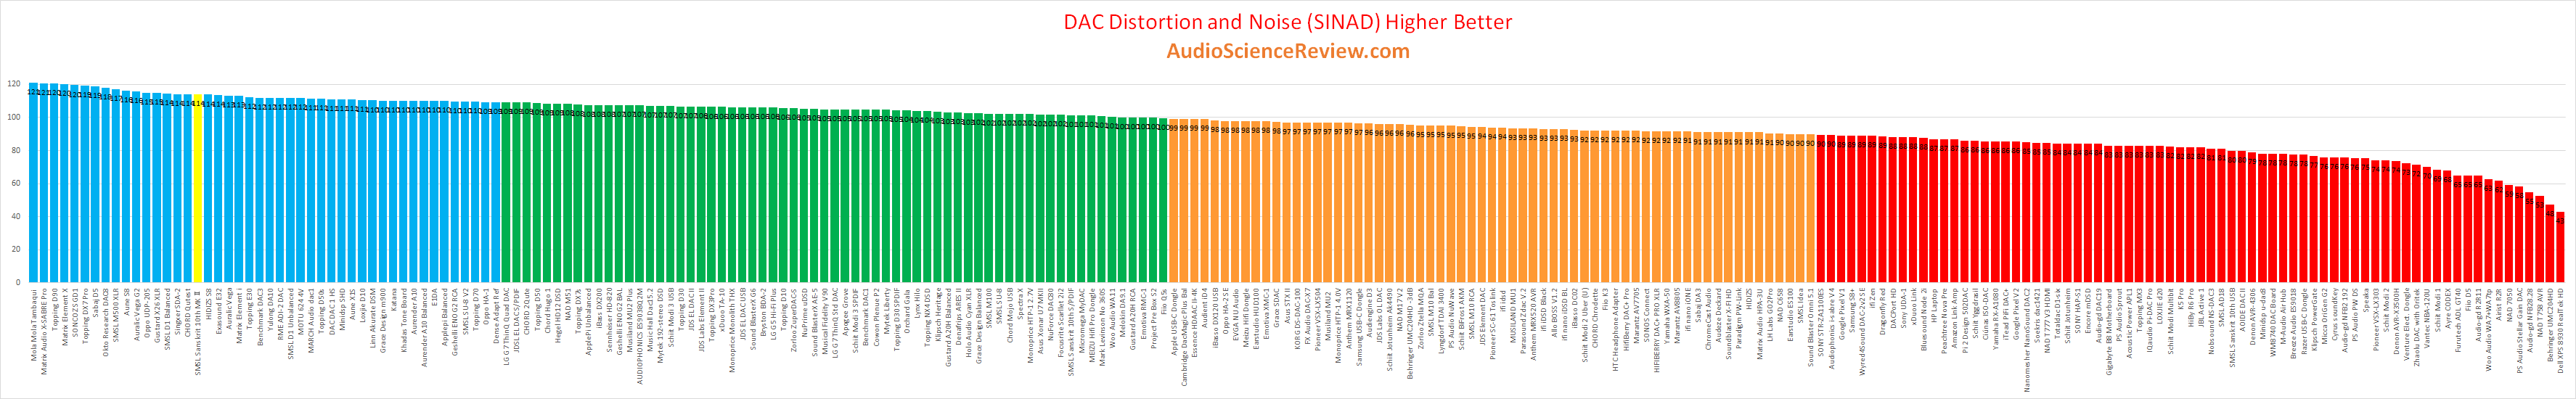 Best USB DAC Small Review 2020.png